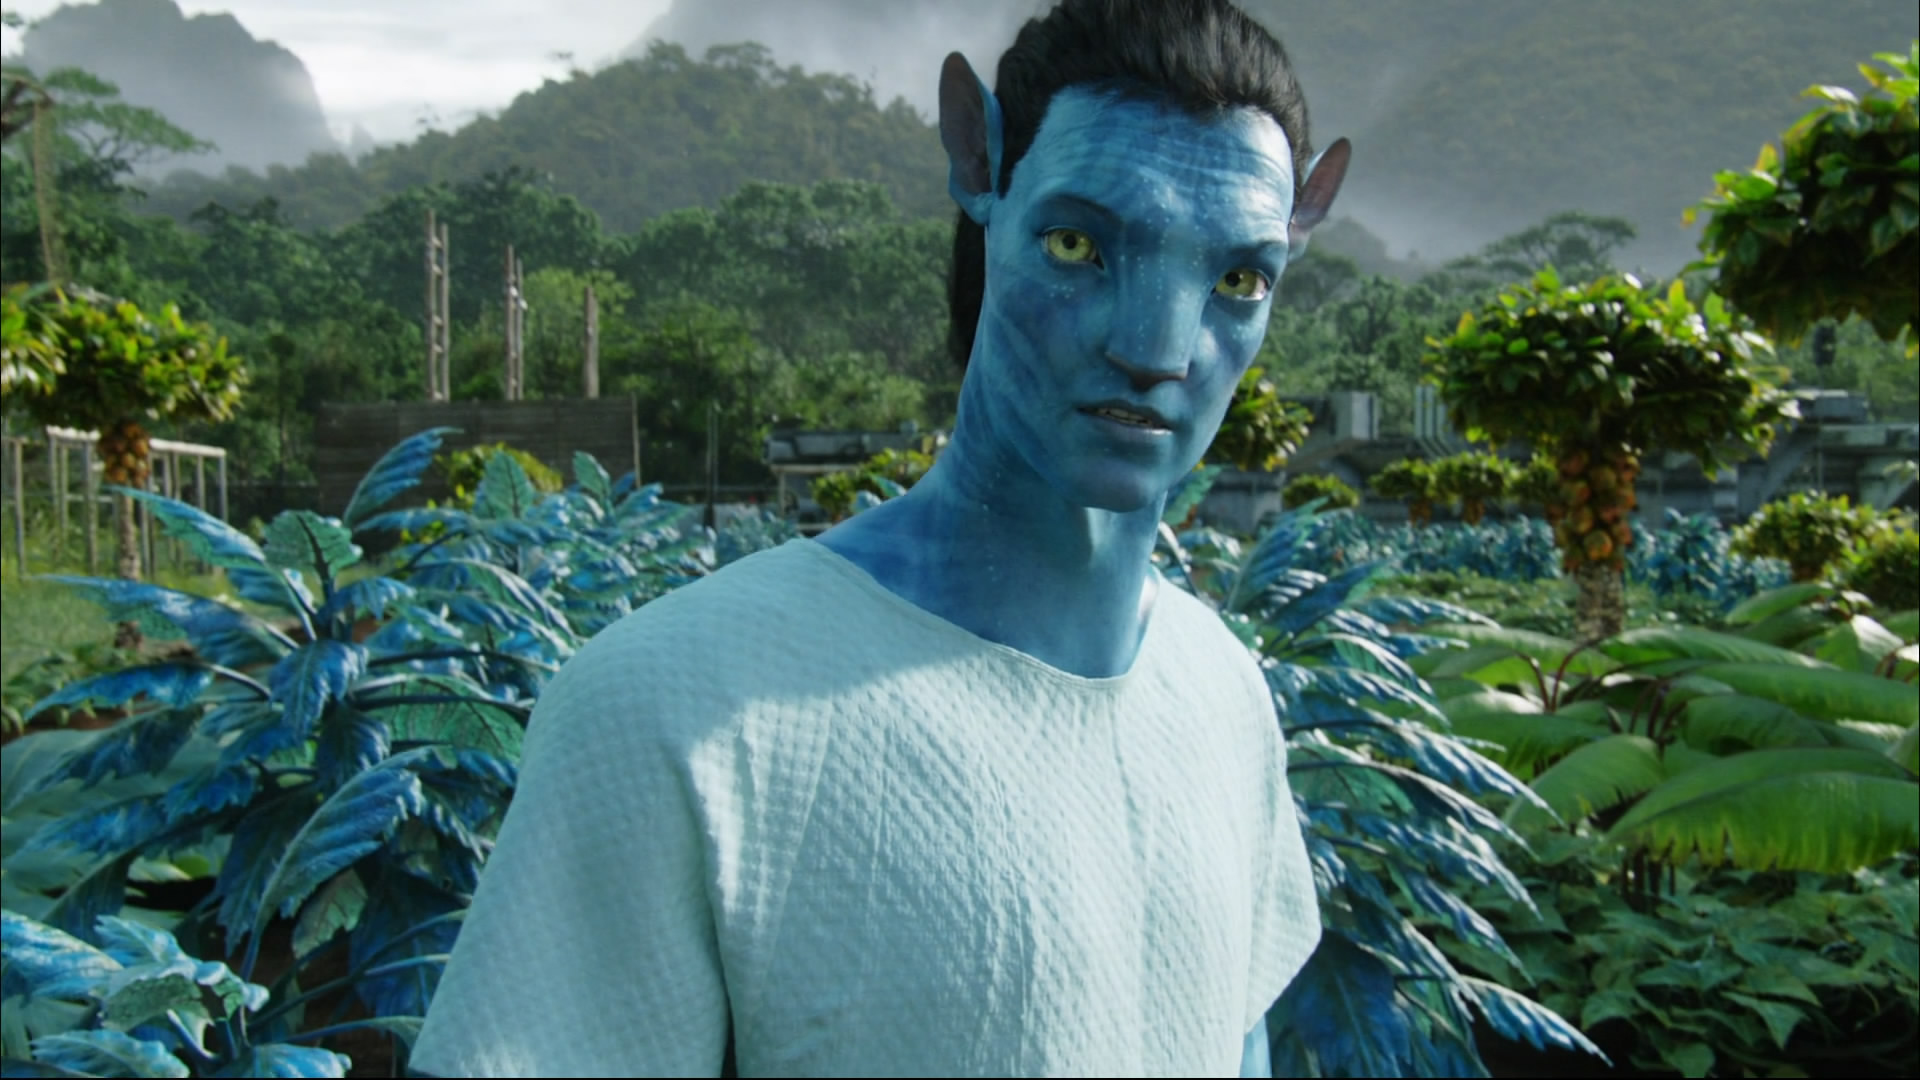 avatar new amazing hd wallpapers(high quality) - all hd wallpapers